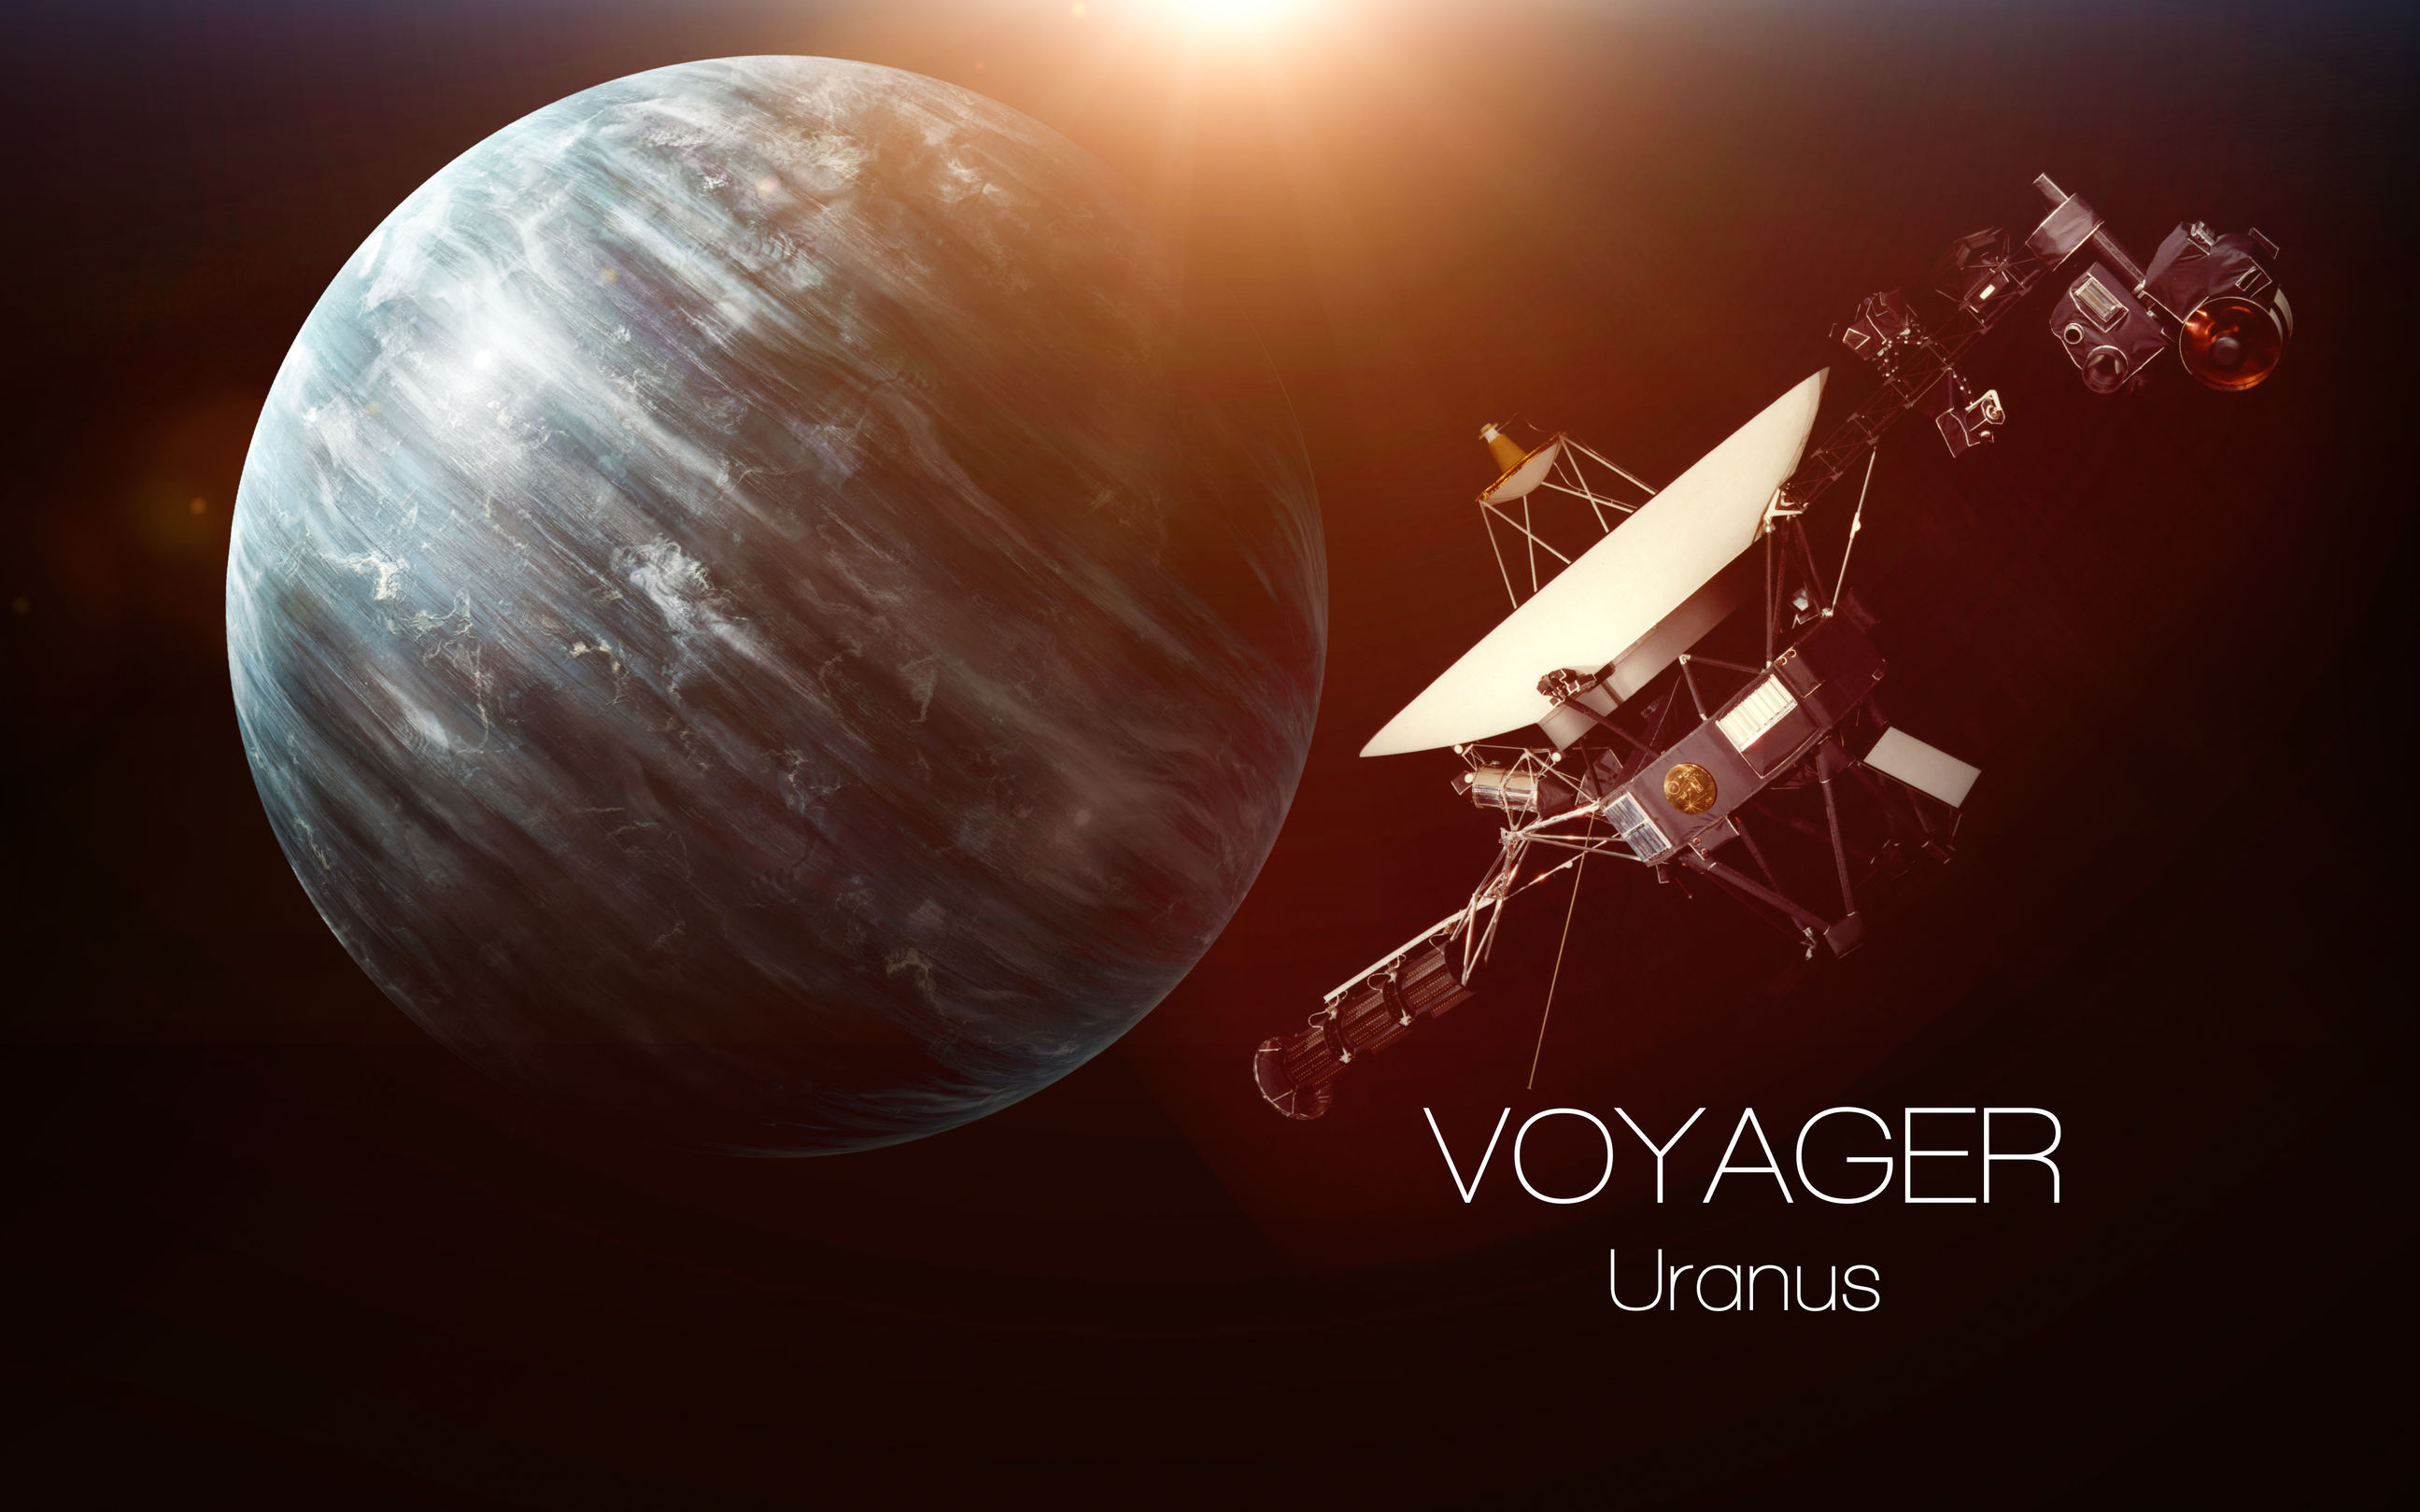 Voyager: 40 years in space